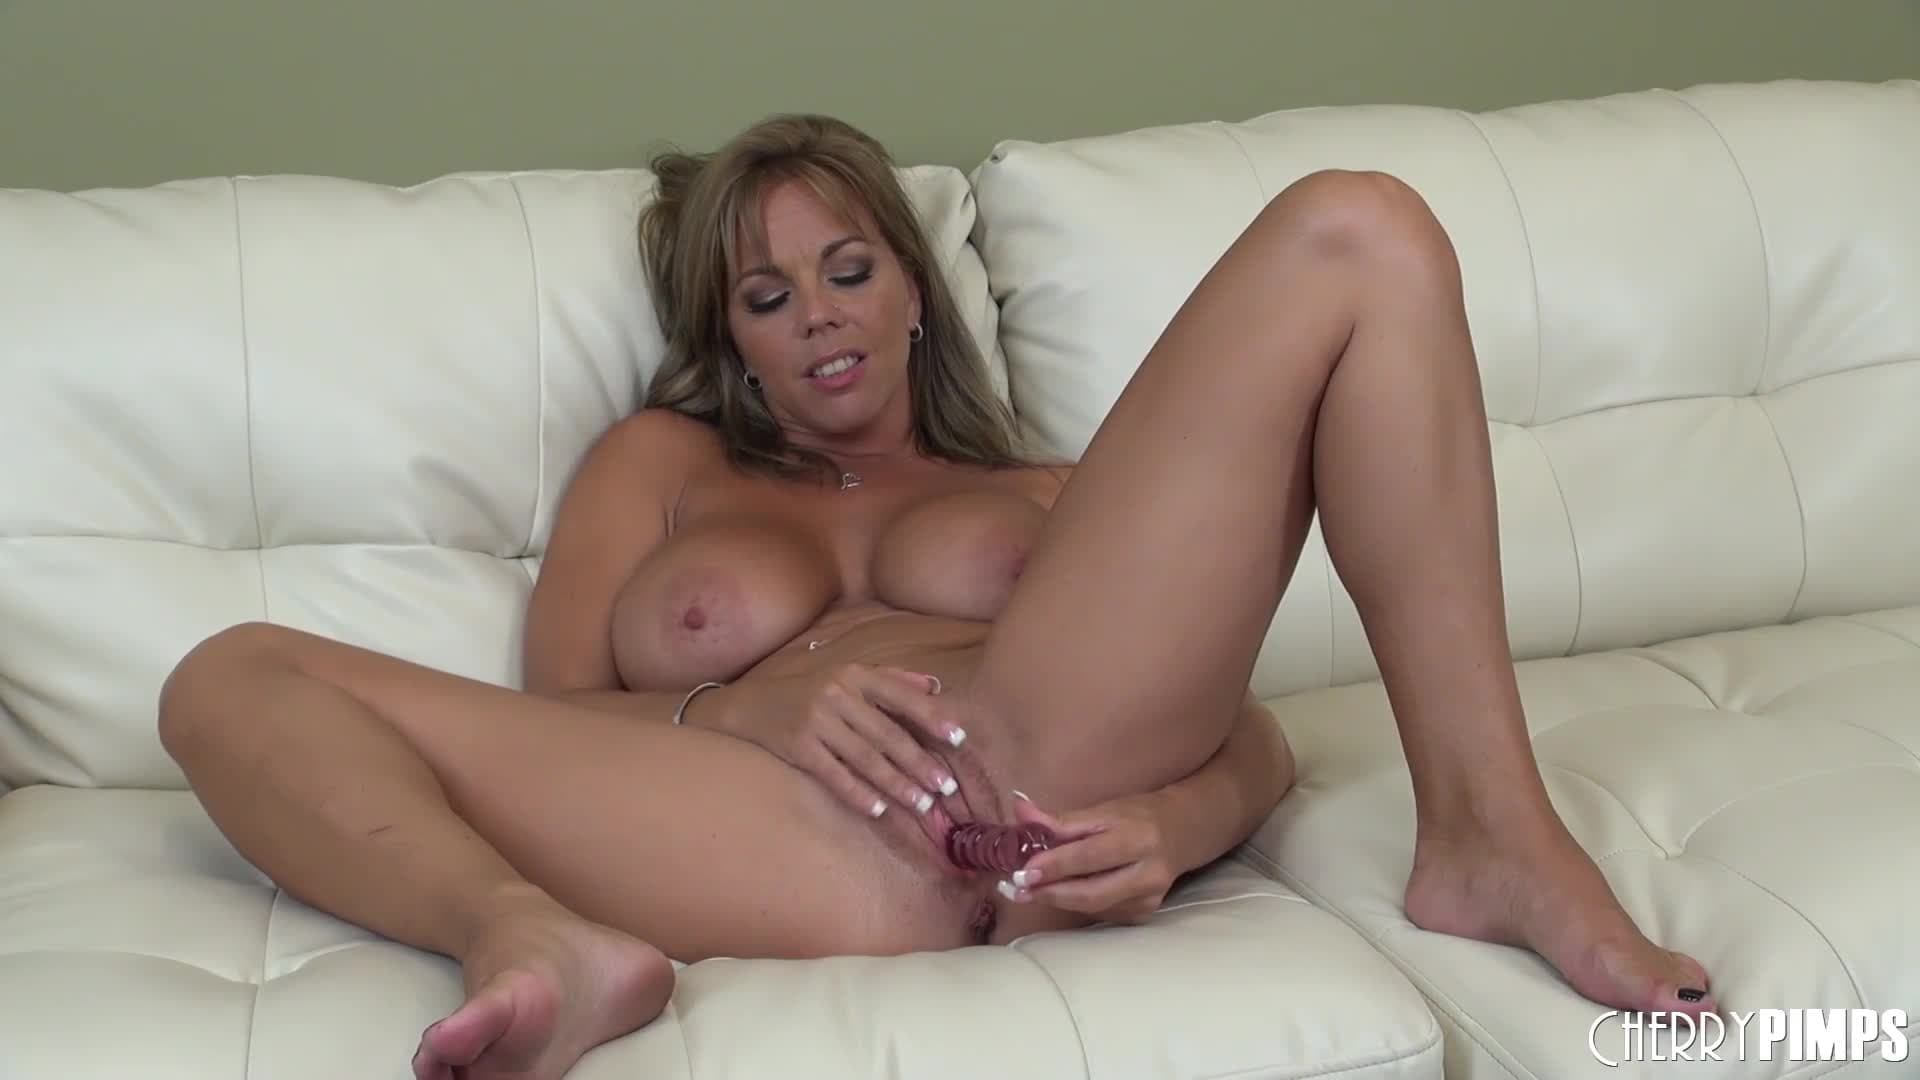 Amber Lynn Porn Clips amber lynn touches herself on the couch - porndig